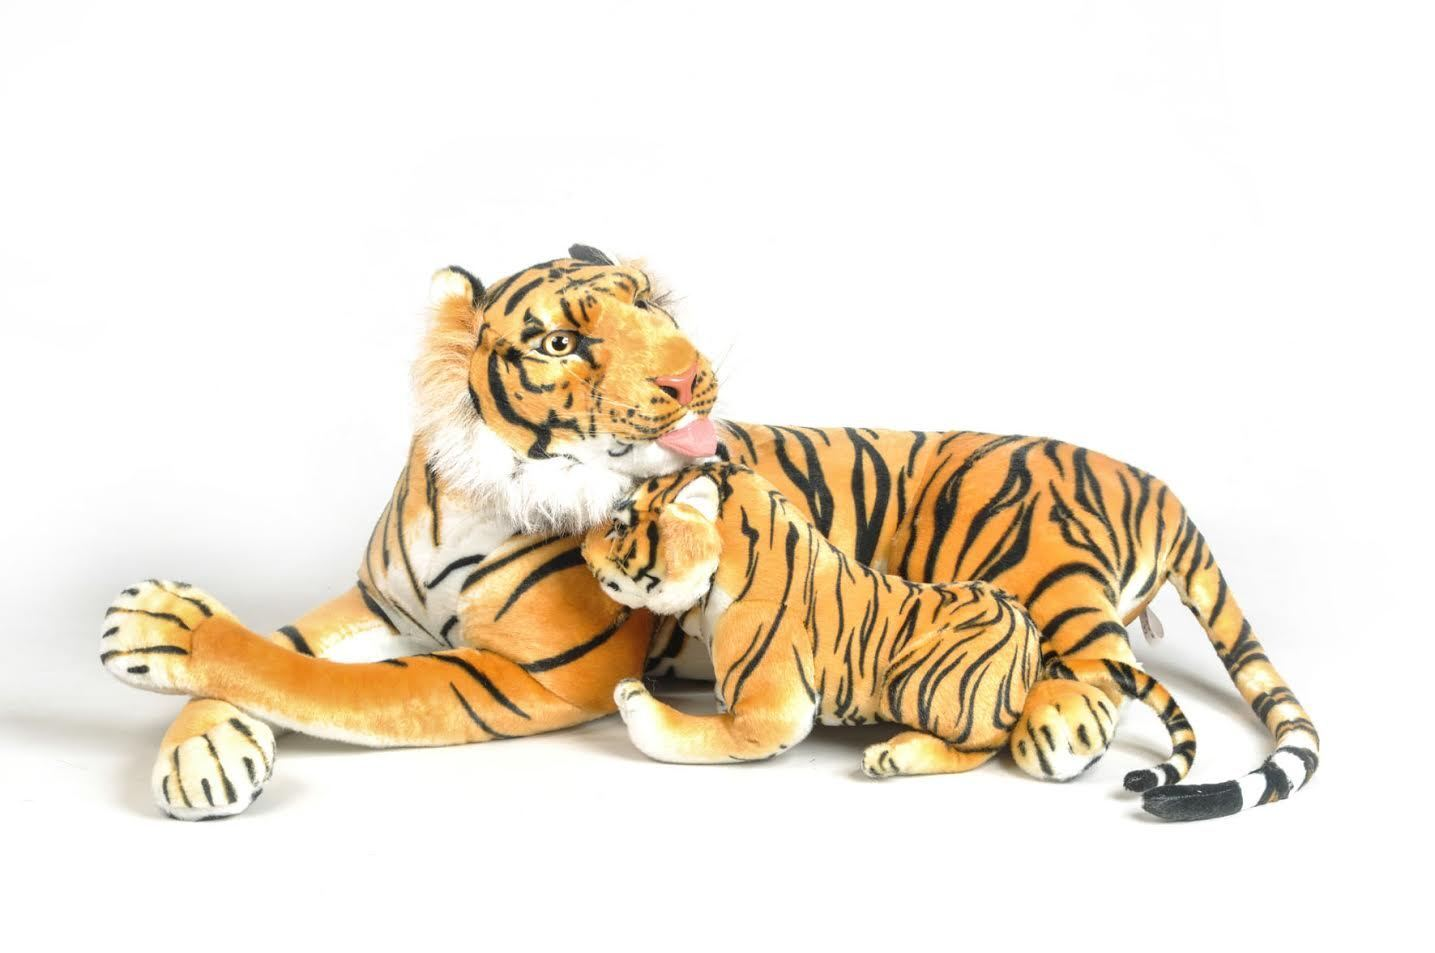 Grand Tiger plush 135 cm and sound baby quality Very soft and Realistic